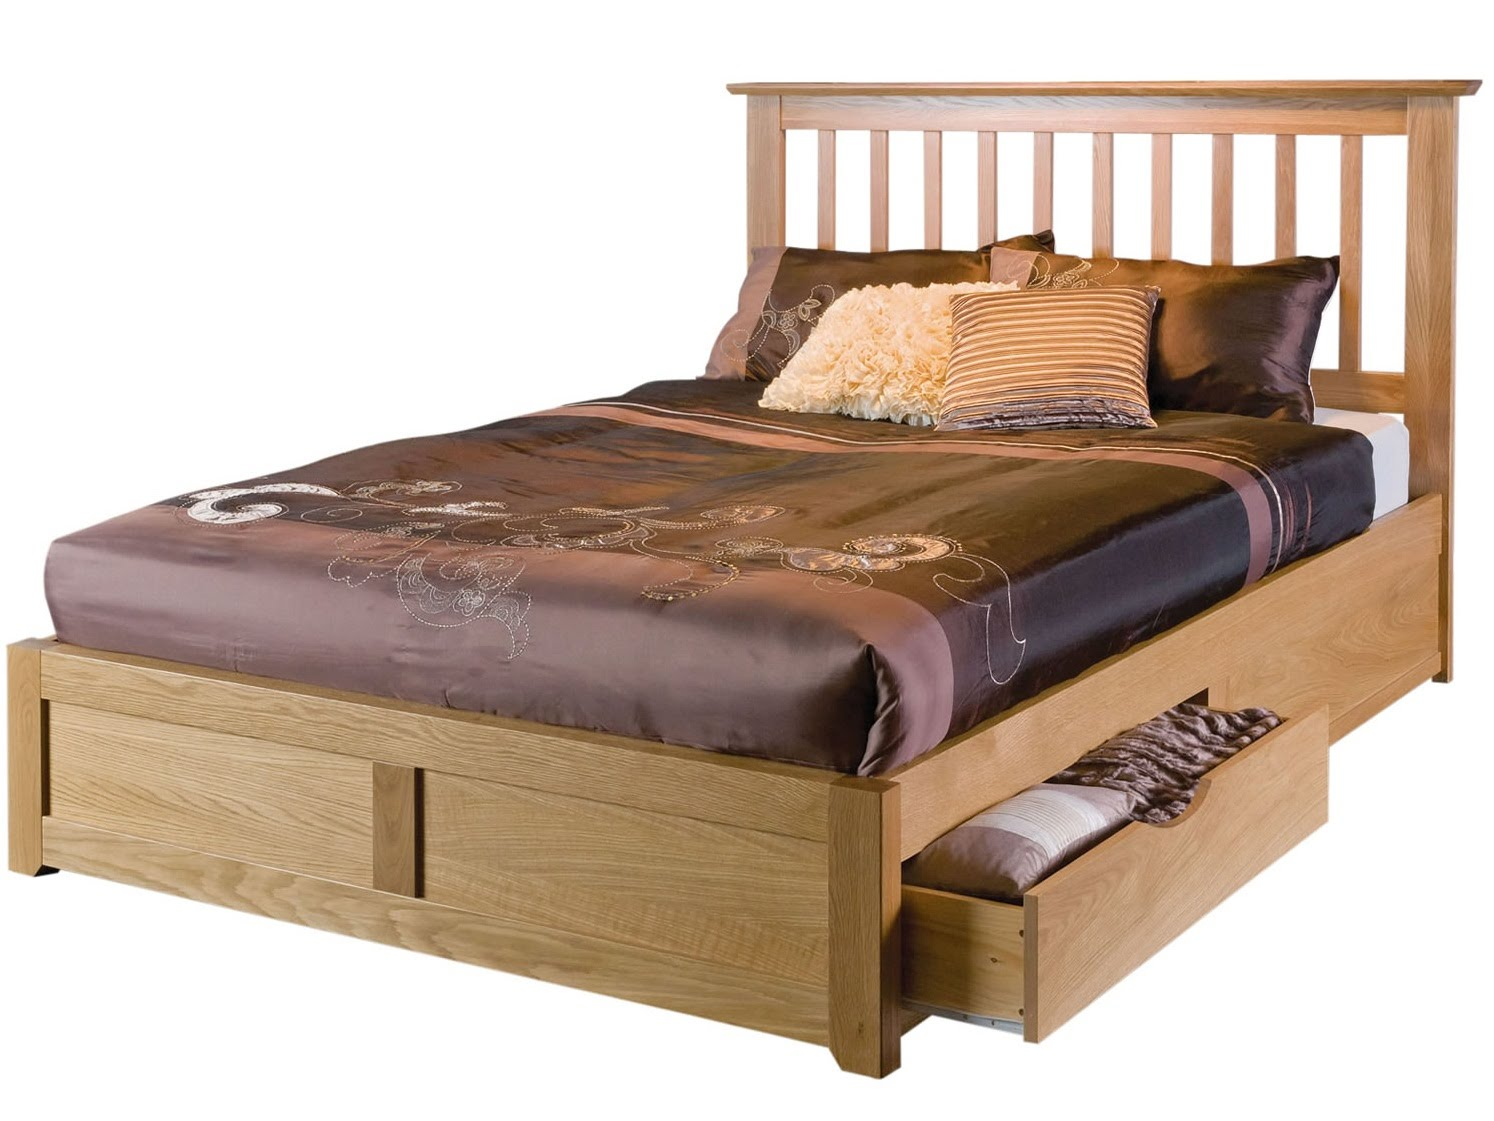 Cute Wooden Bed Frames - YouTube wooden bed frames